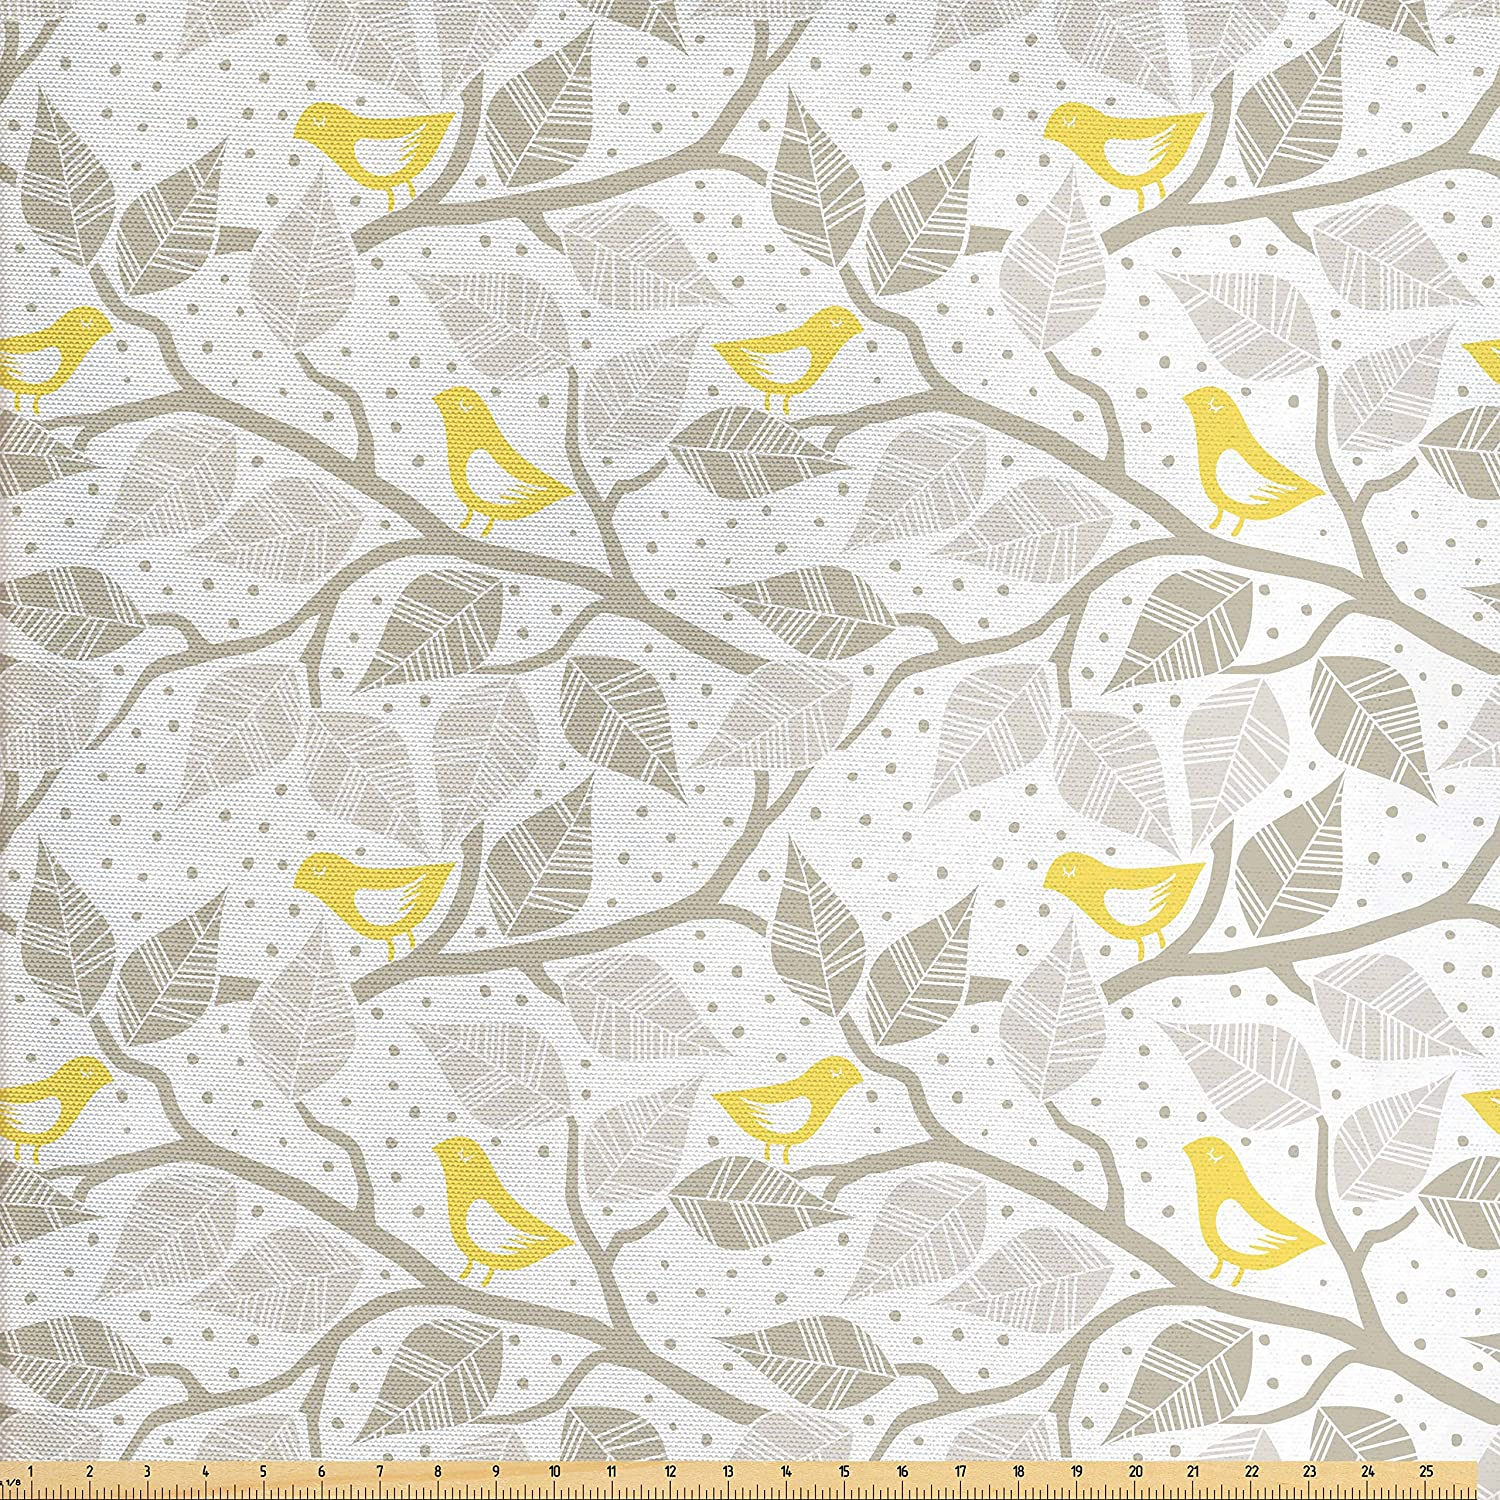 Amazon Com Ambesonne Grey Fabric By The Yard Birds On The Branch With Pastel Leaves On Dotted Background Nature Art Decorative Fabric For Upholstery And Home Accents Yellow Dust Pale Grey